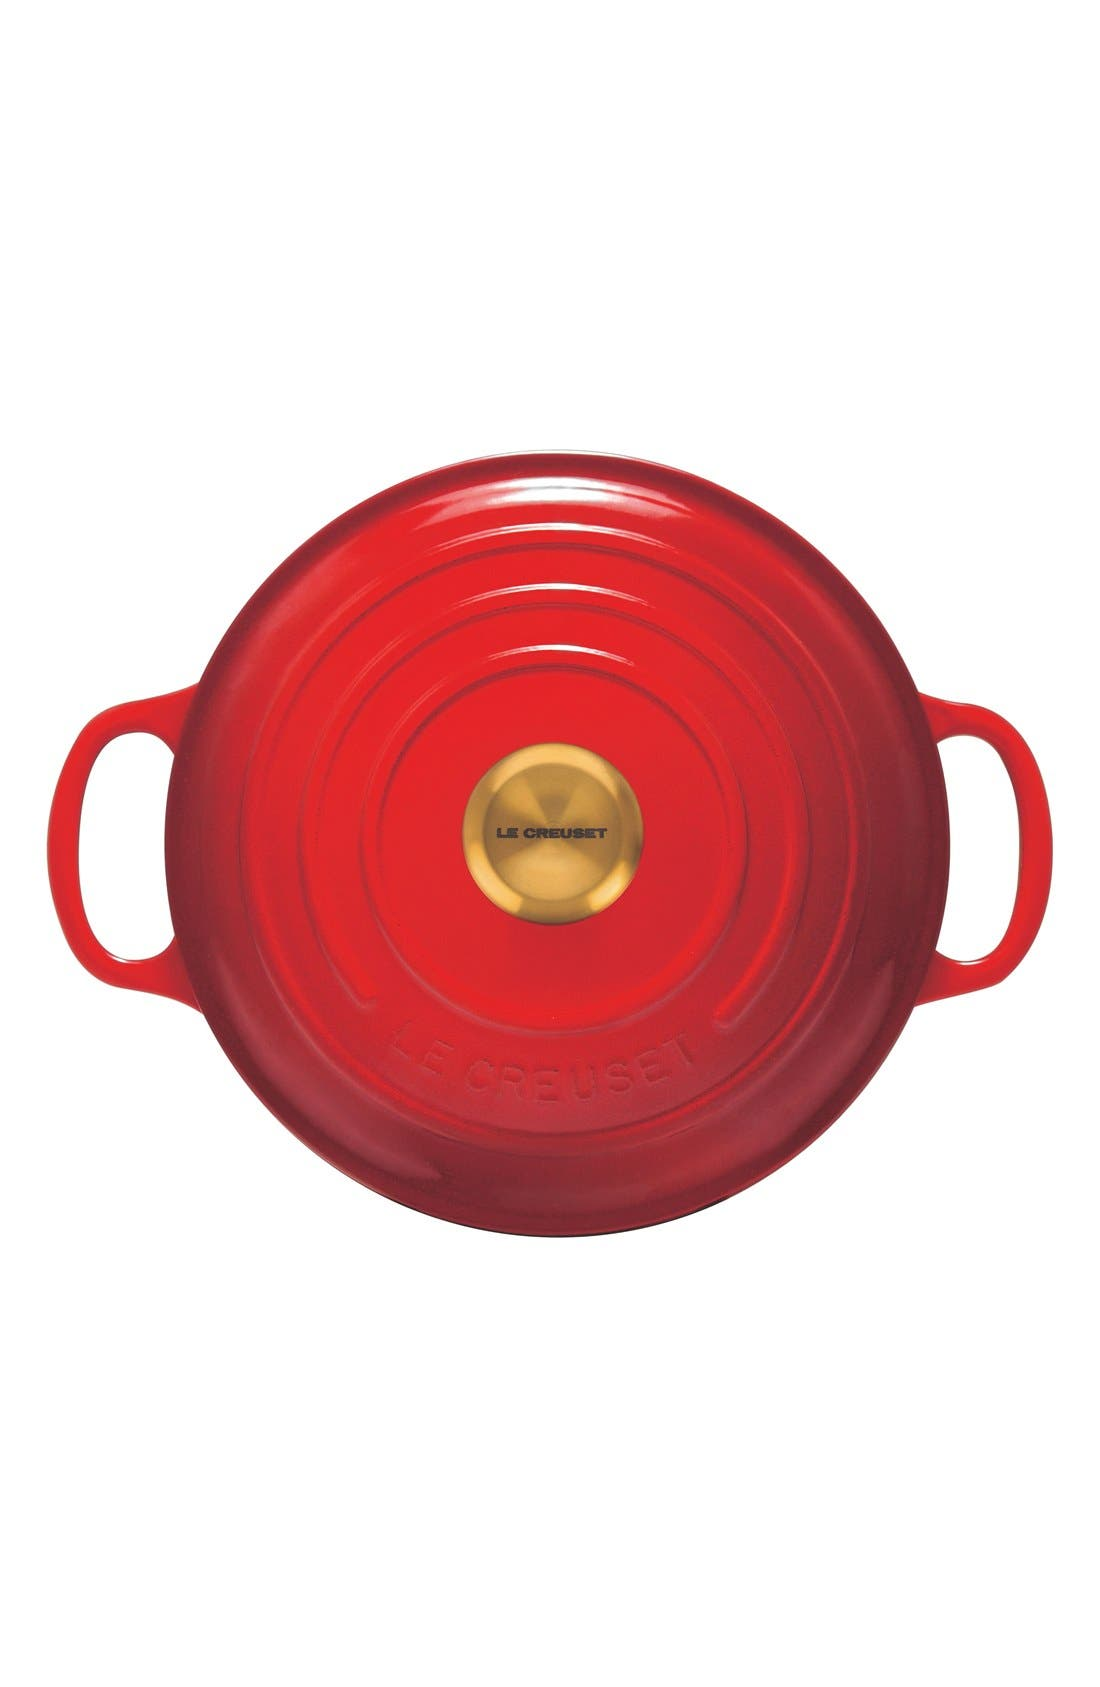 Gold Knob Collection 4 1/2 Quart Round French/Dutch Oven,                             Alternate thumbnail 2, color,                             Cherry/Cerise Gold